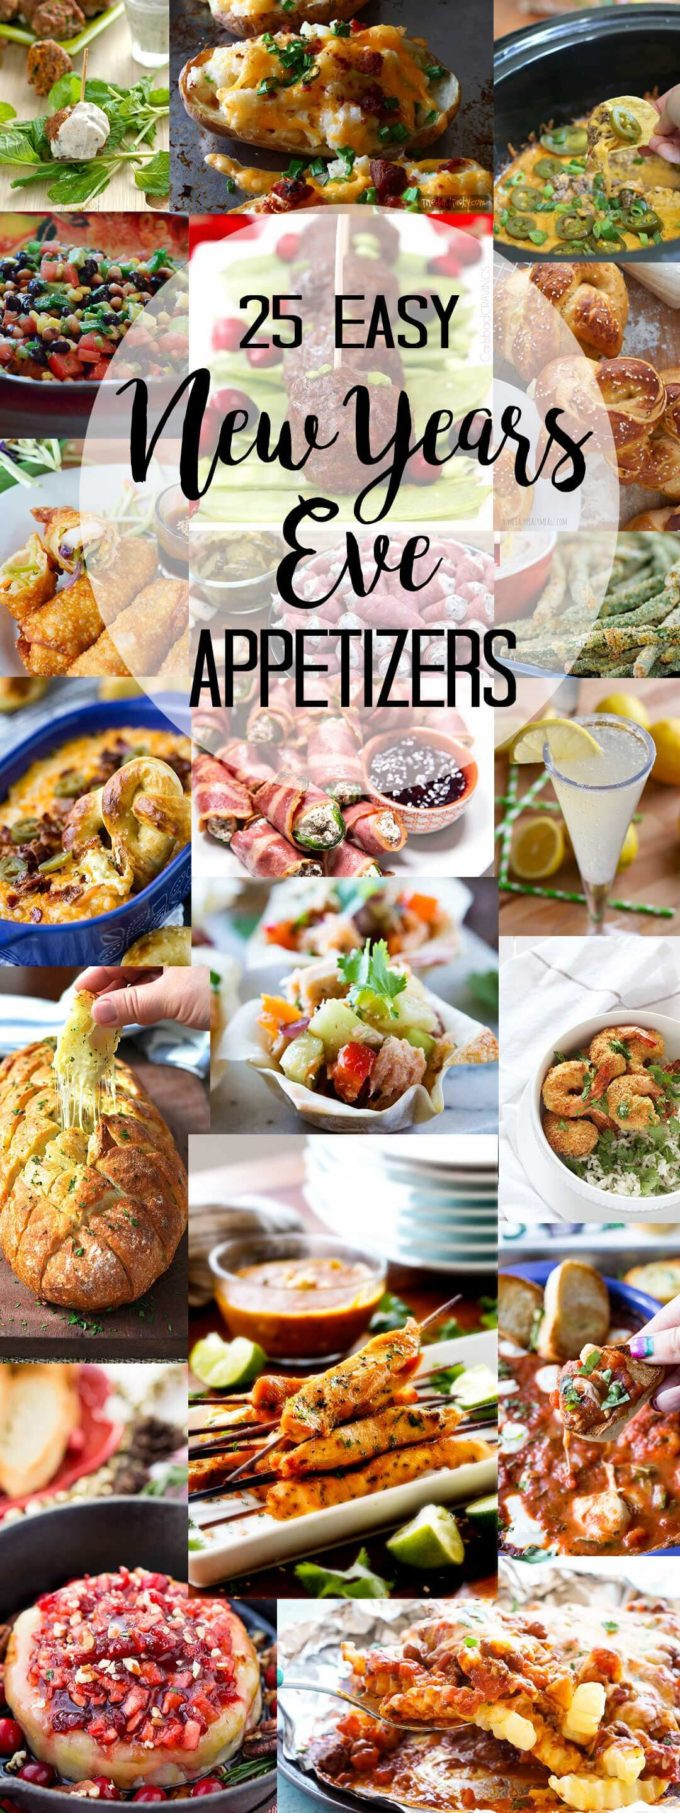 Easy New Years Appetizers  25 New Year s Eve Appetizers Easy Peasy Meals